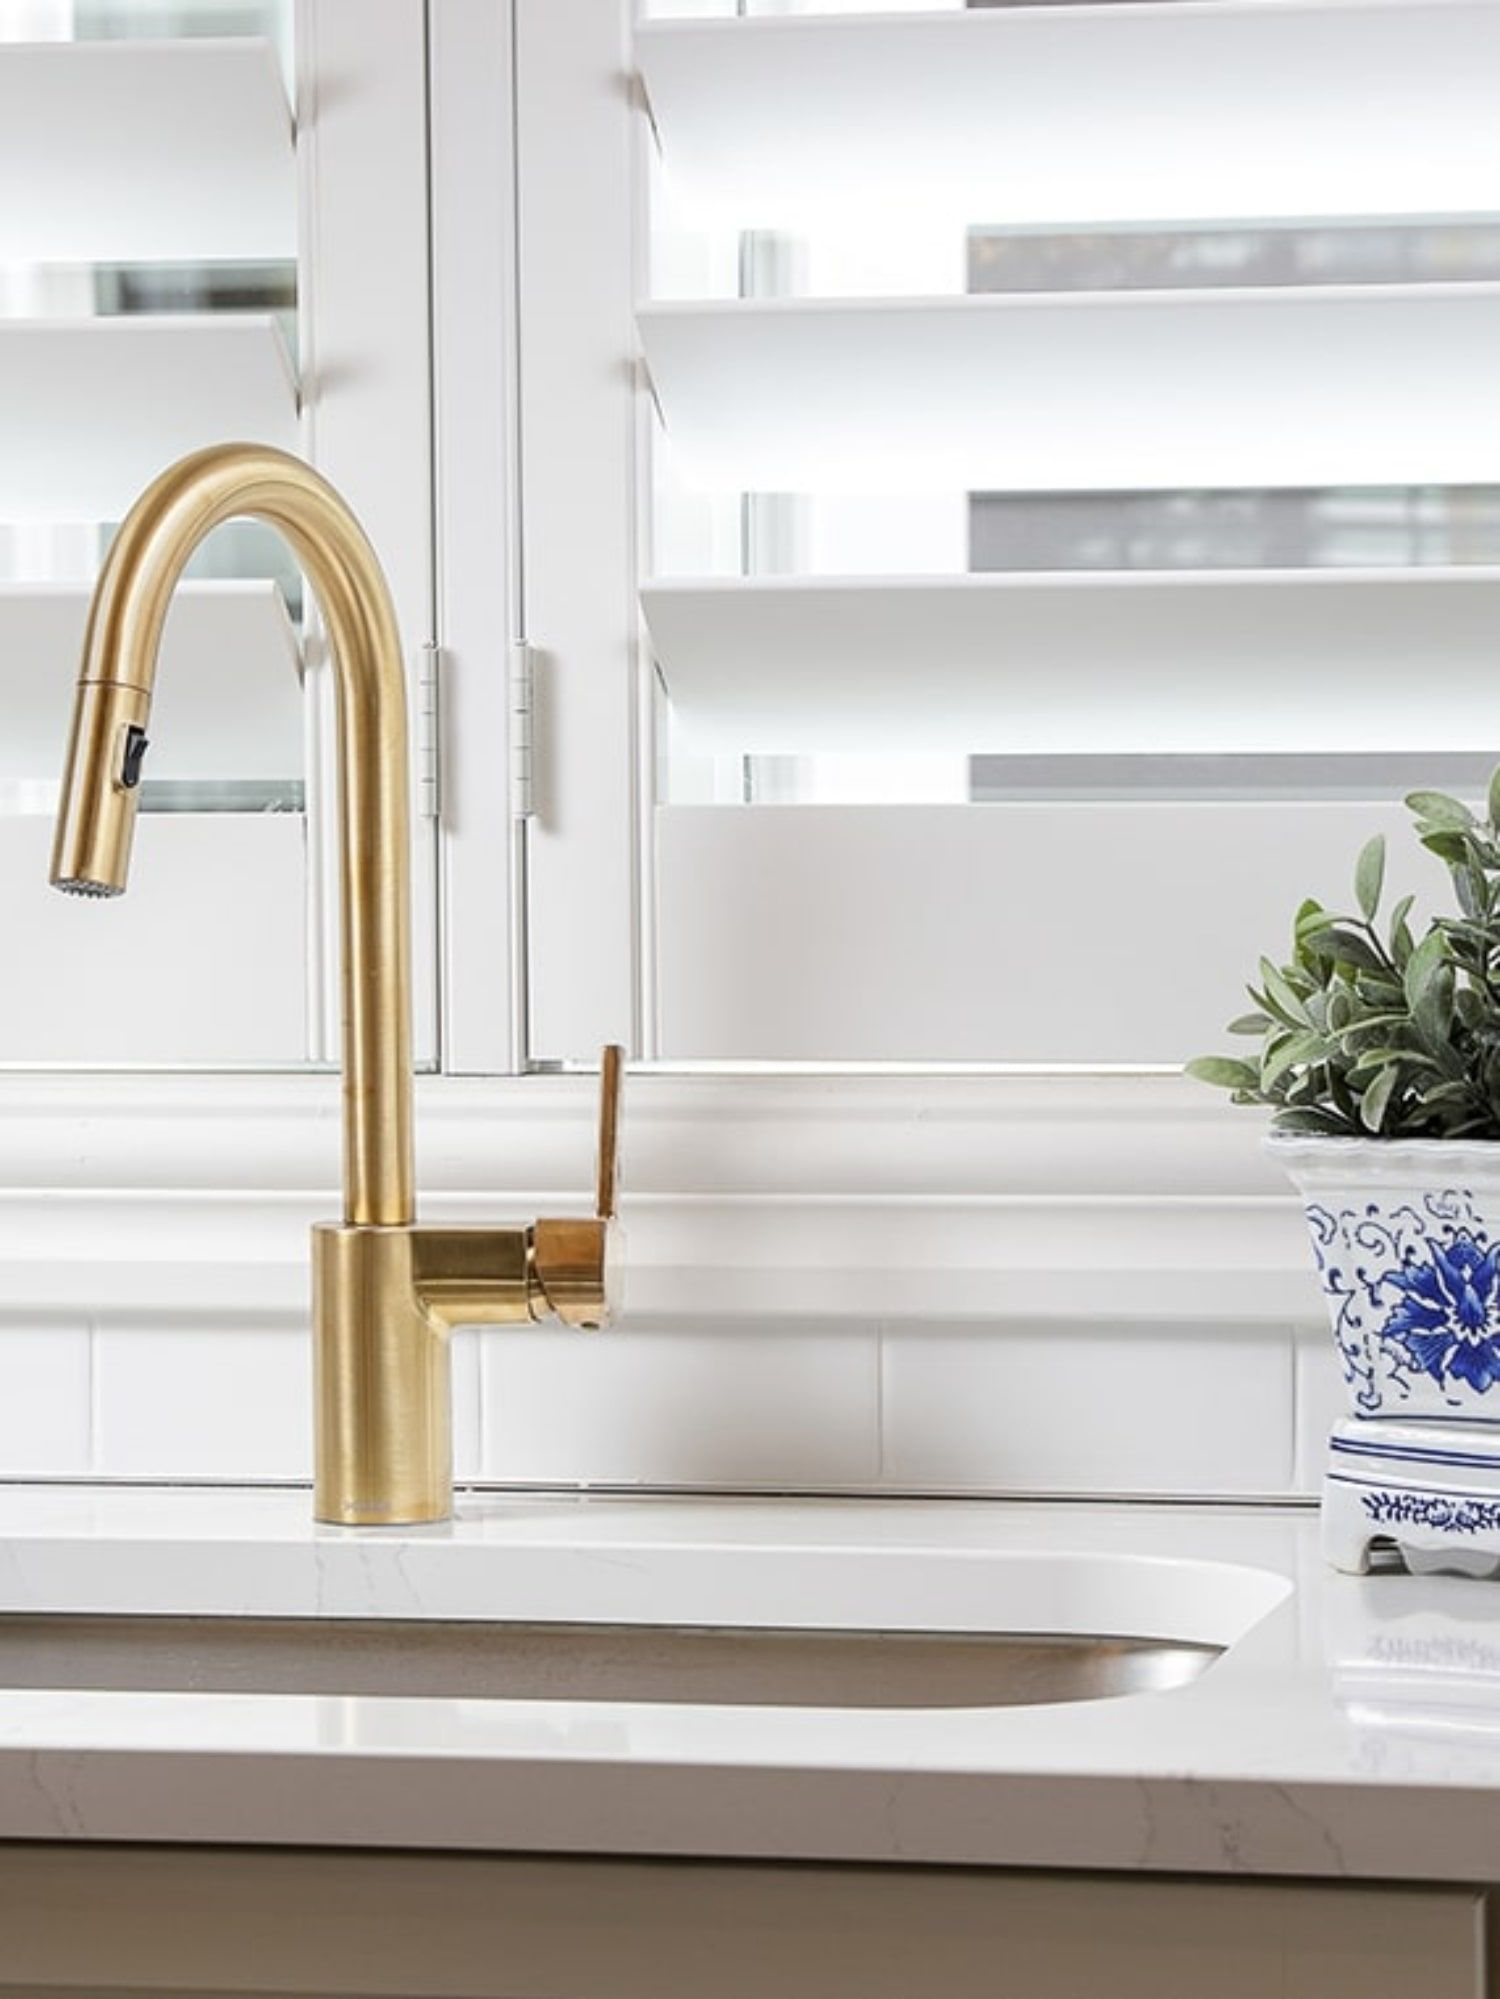 5 Reasons Your Home May Need A Smart Faucet Ashley Brooks At Home In 2021 Smart Faucet Kitchen And Bath Design Faucet [ 1999 x 1500 Pixel ]